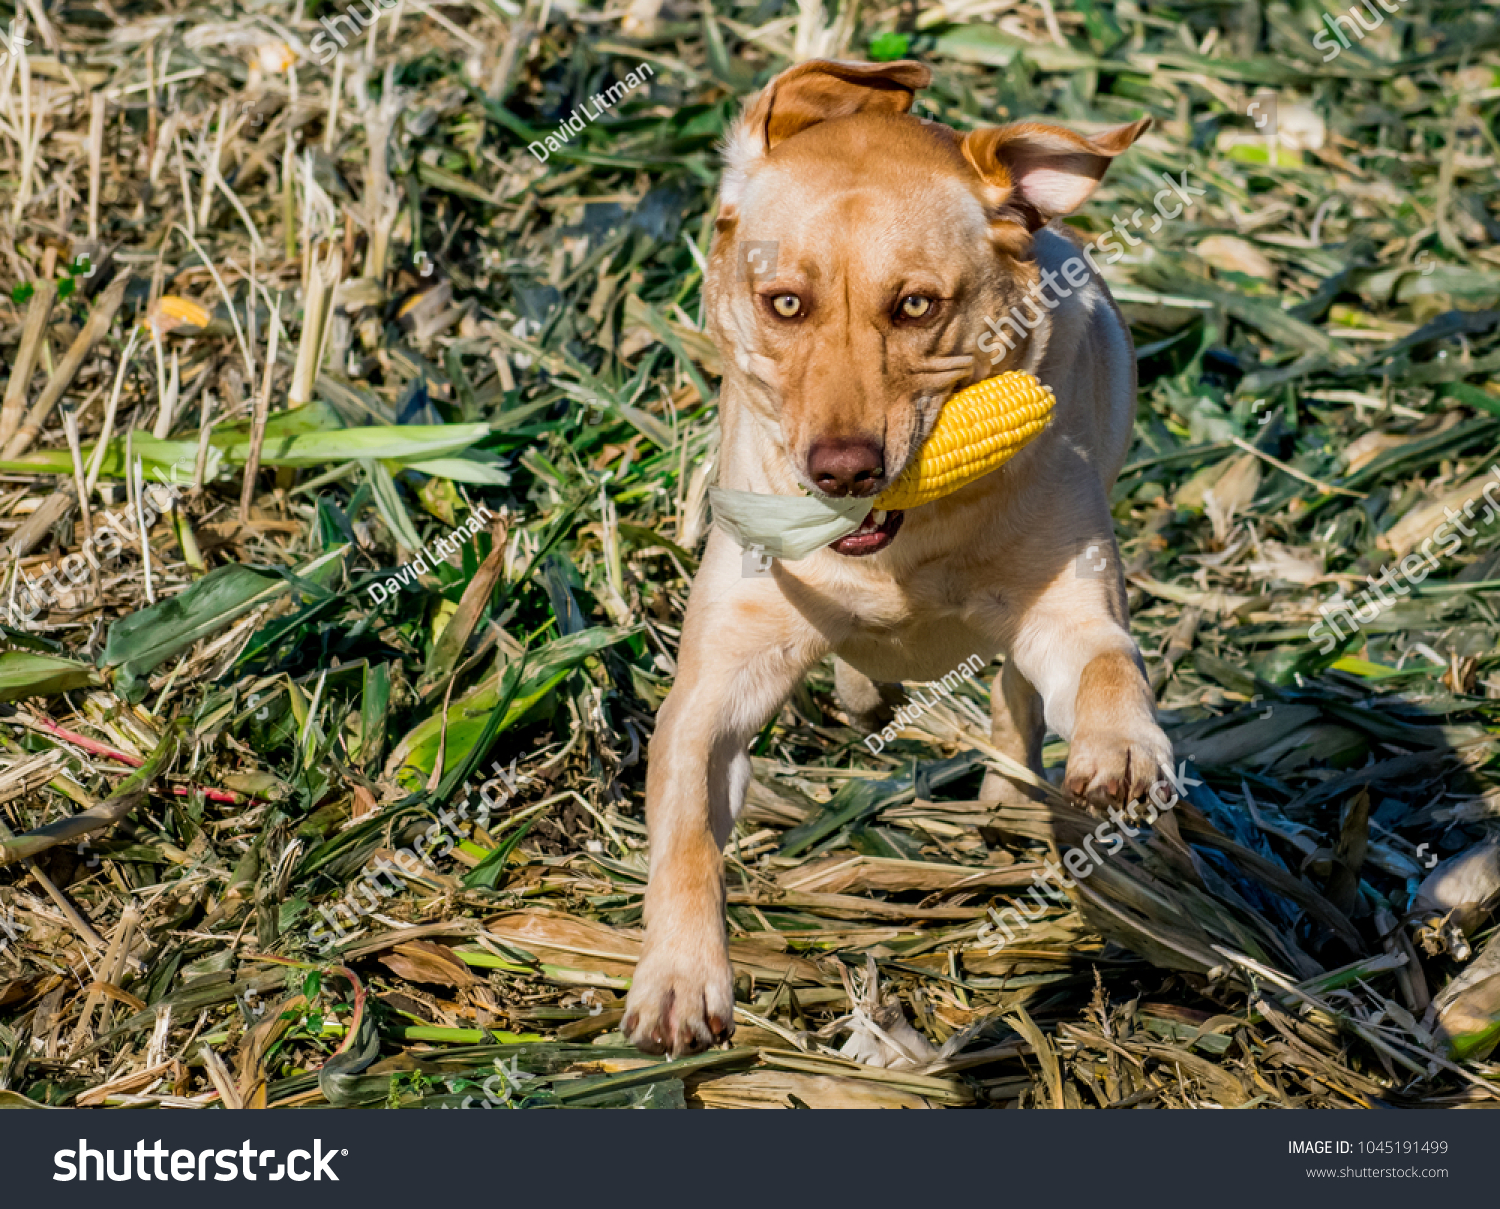 A young, energetic dog (yellow Labrador retriever, Lab) runs and jumps though a corn field with an ear of corn.